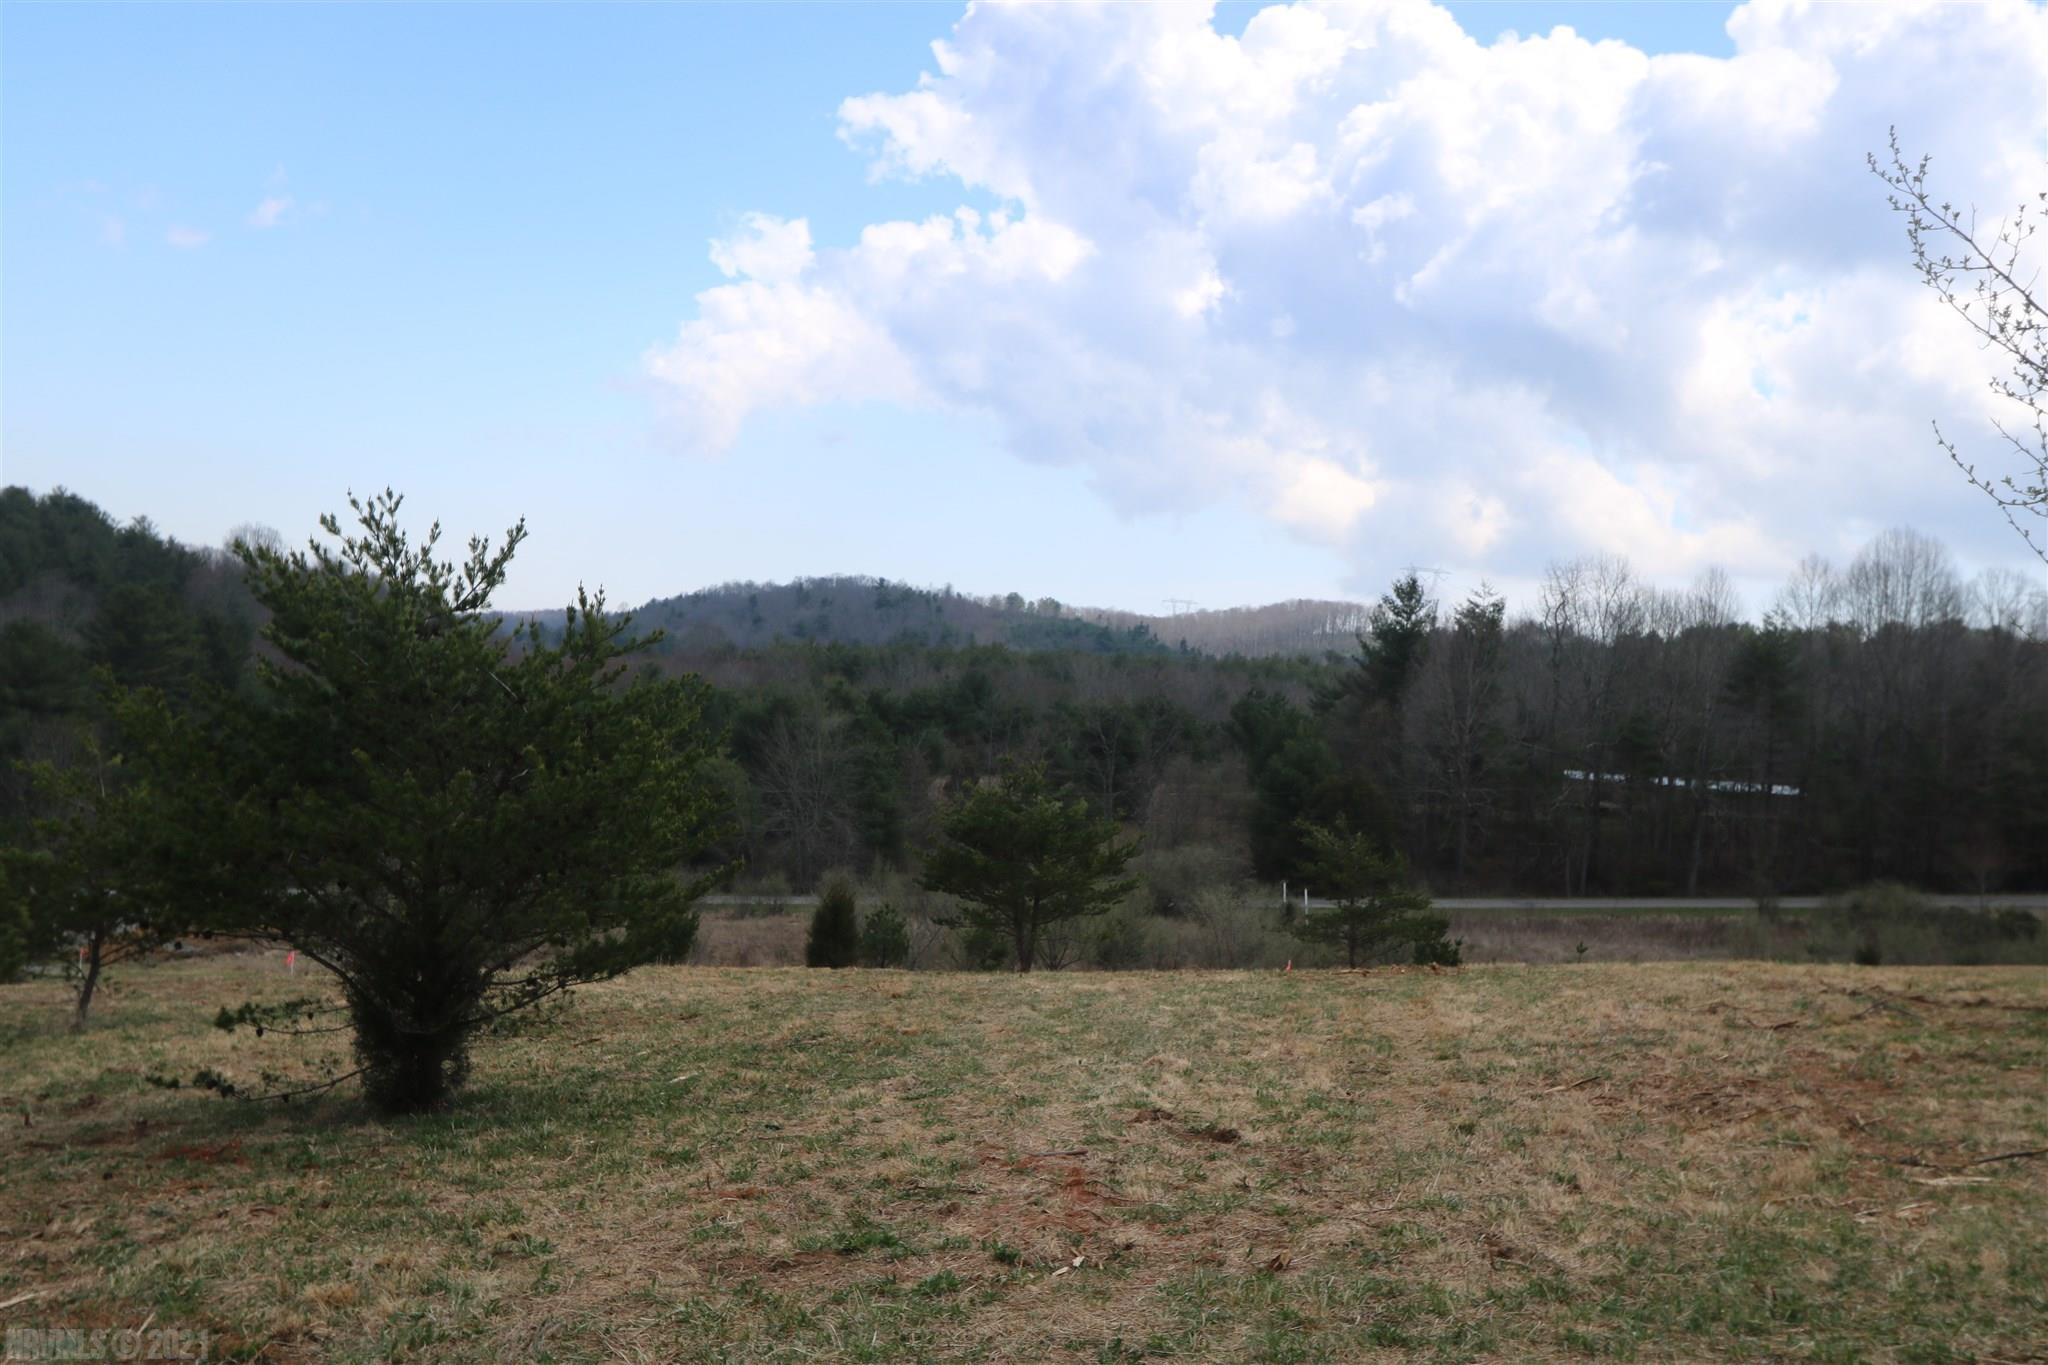 Homesite located in Willis, VA.  Property has been recently perked for a 3 to 4 bedroom home.  Land is gently sloping and mostly cleared with a small stream.  New residential drive already in stalled and ready for your new home construction. No restrictions.  New survey being completed.  High Speed fiber Optic internet service available.